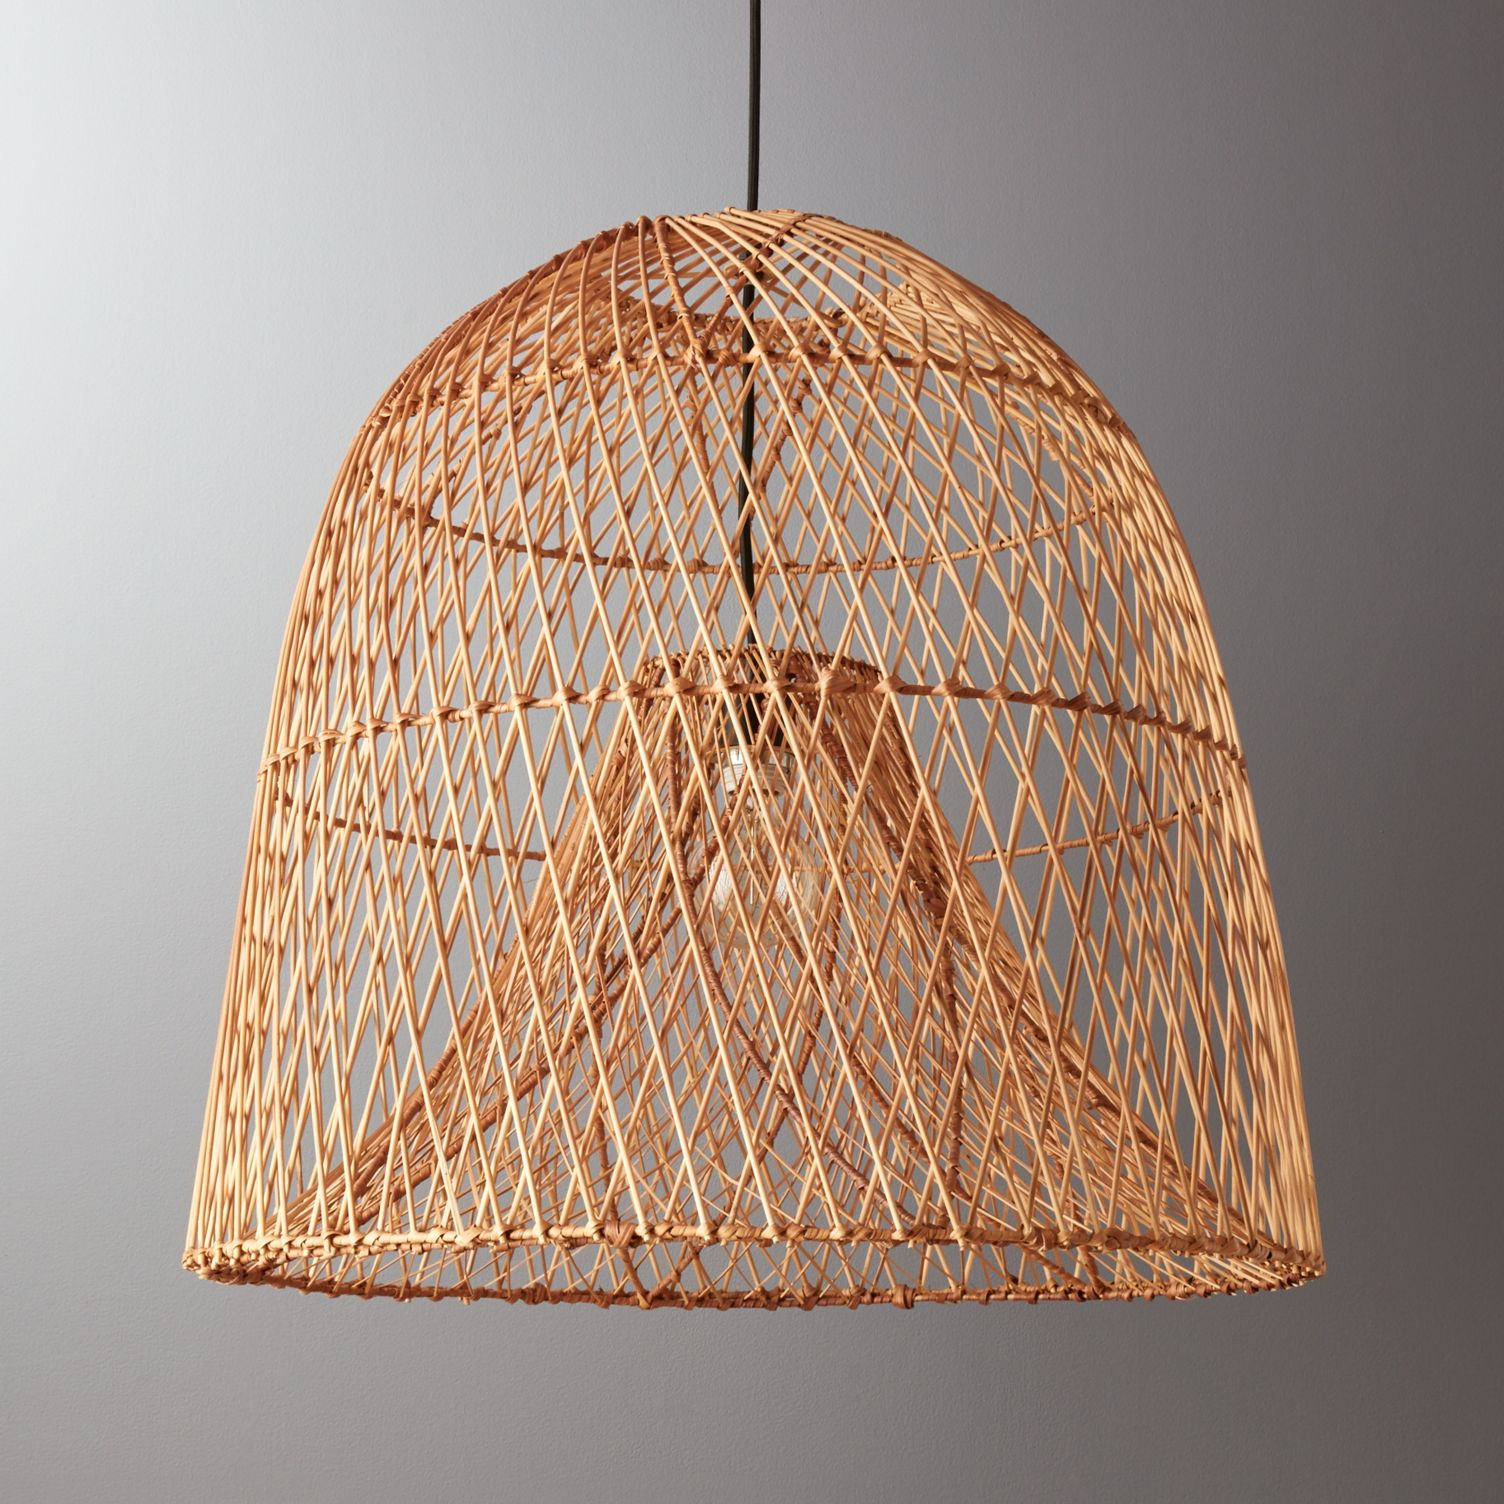 Natural-woven-pendant-light